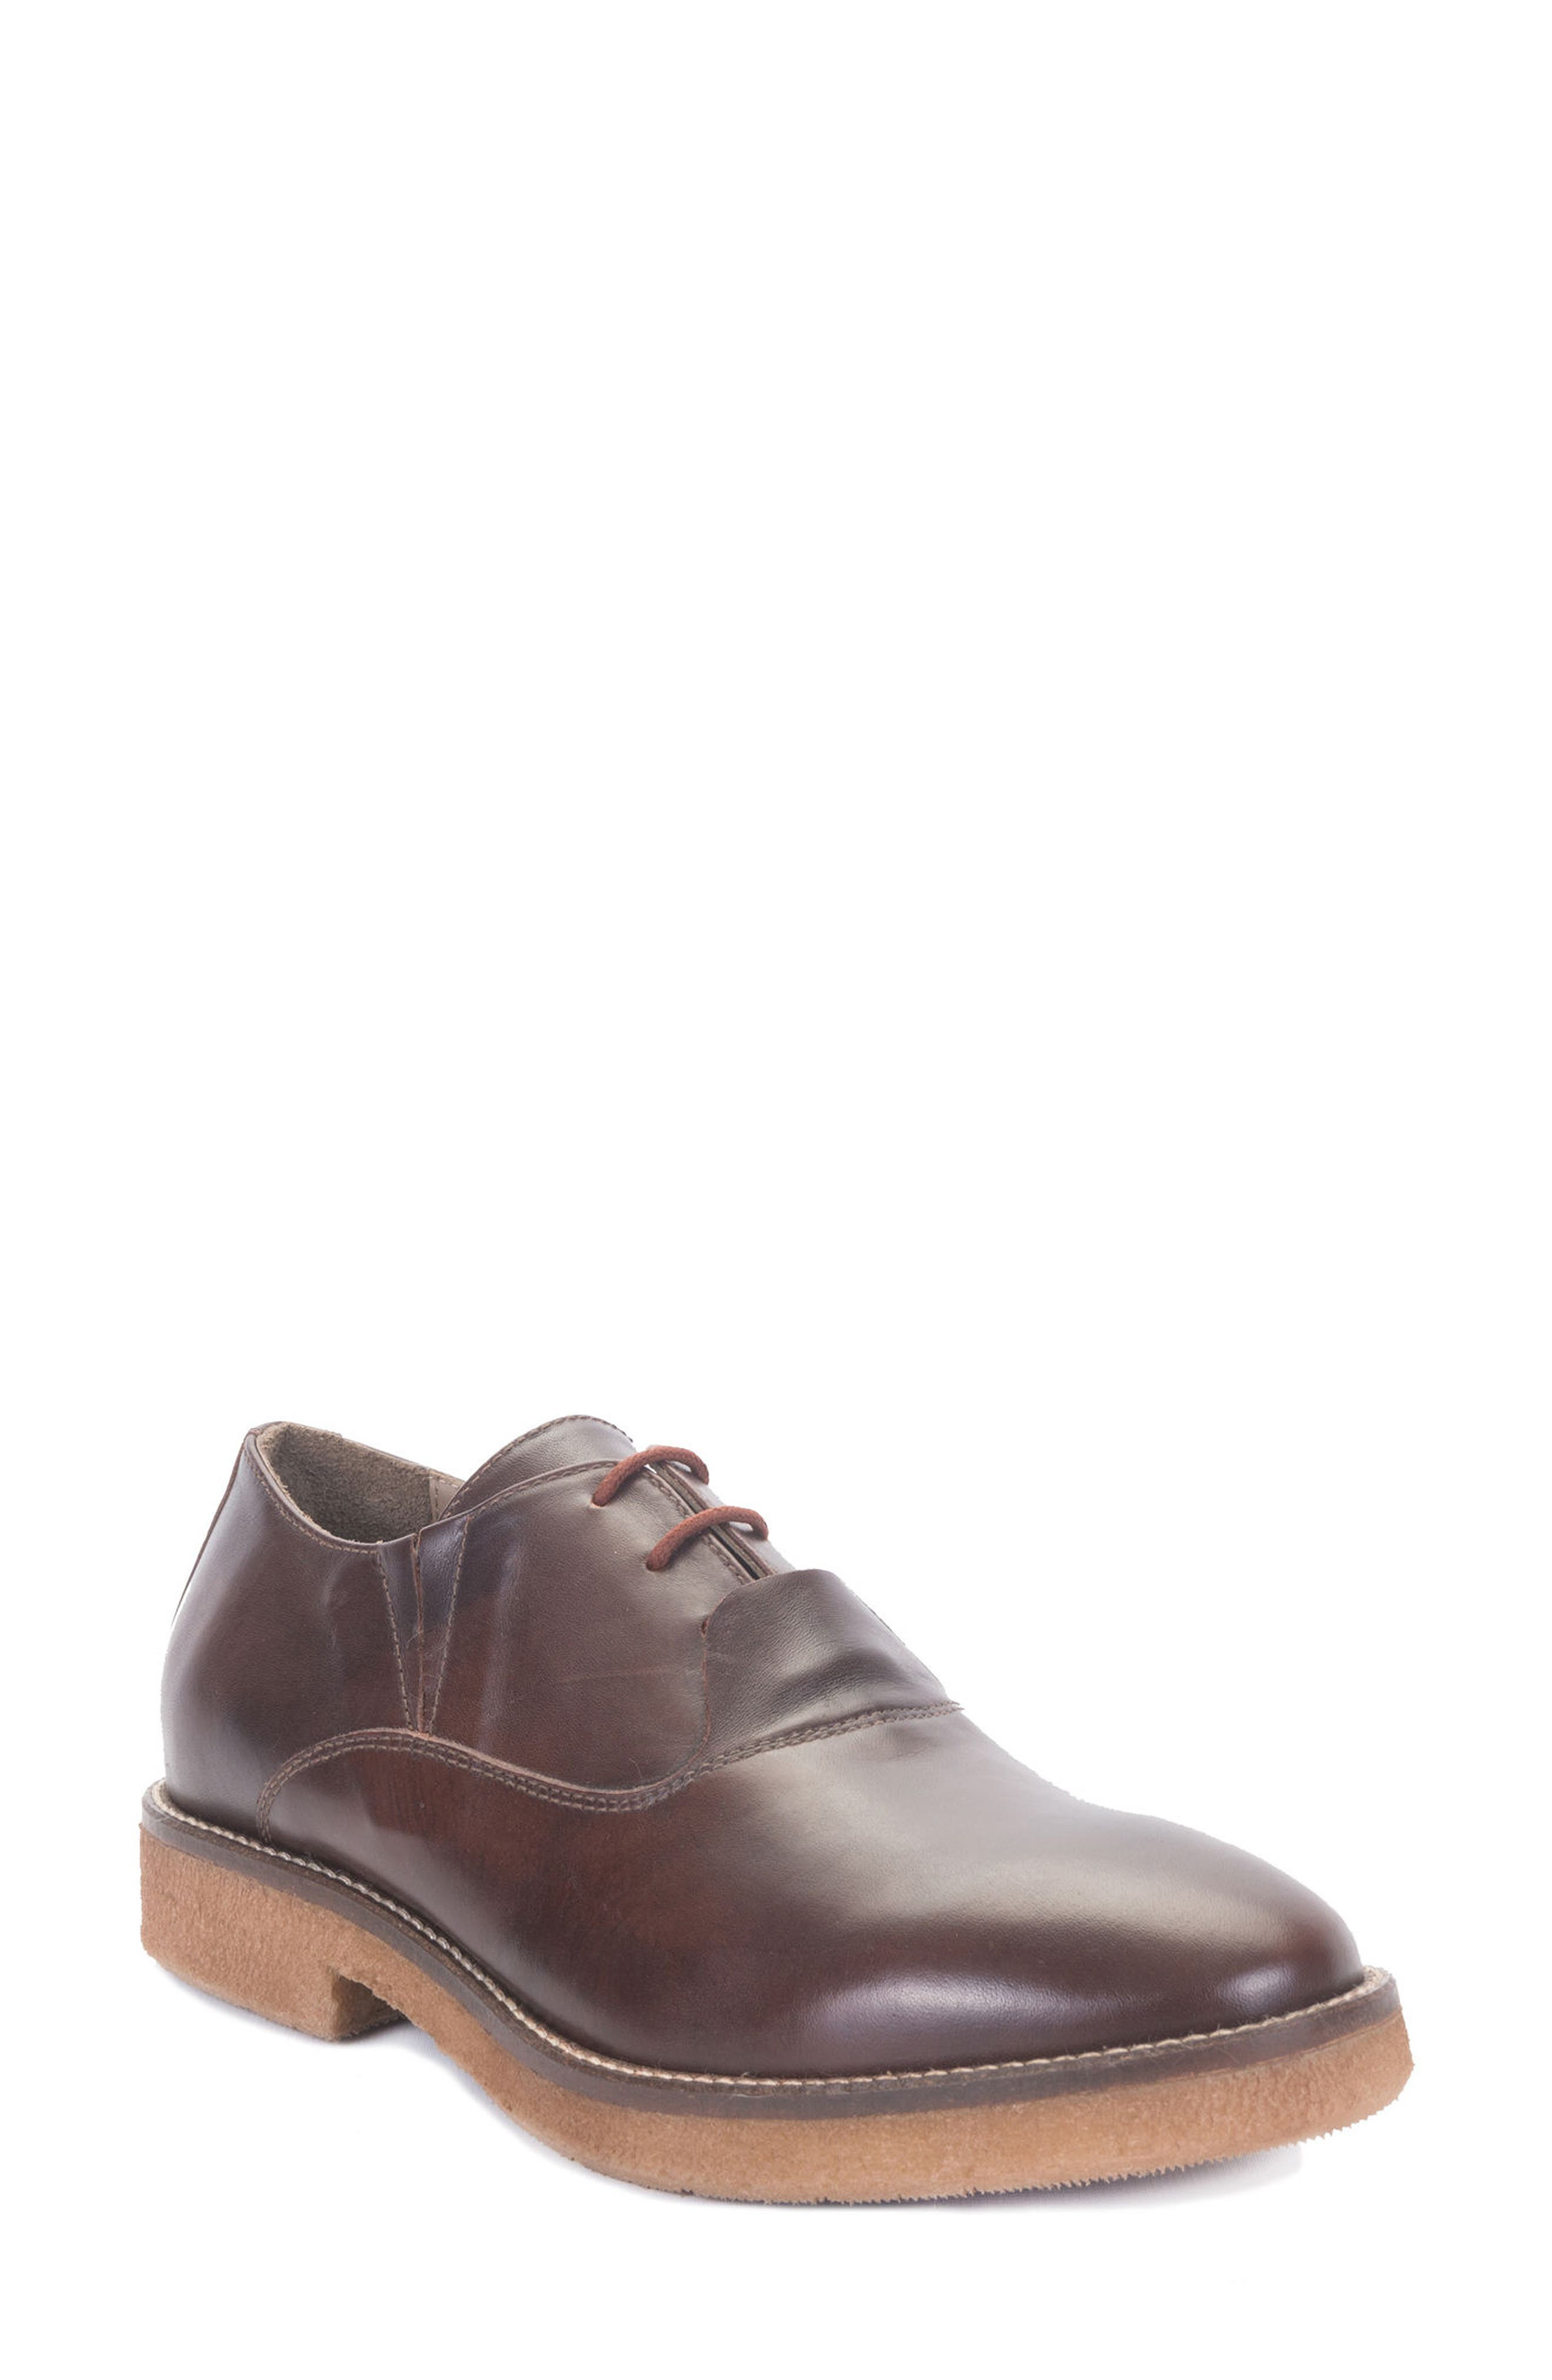 Molinella Water-Resistant Oxford,                         Main,                         color, Ruggine Leather